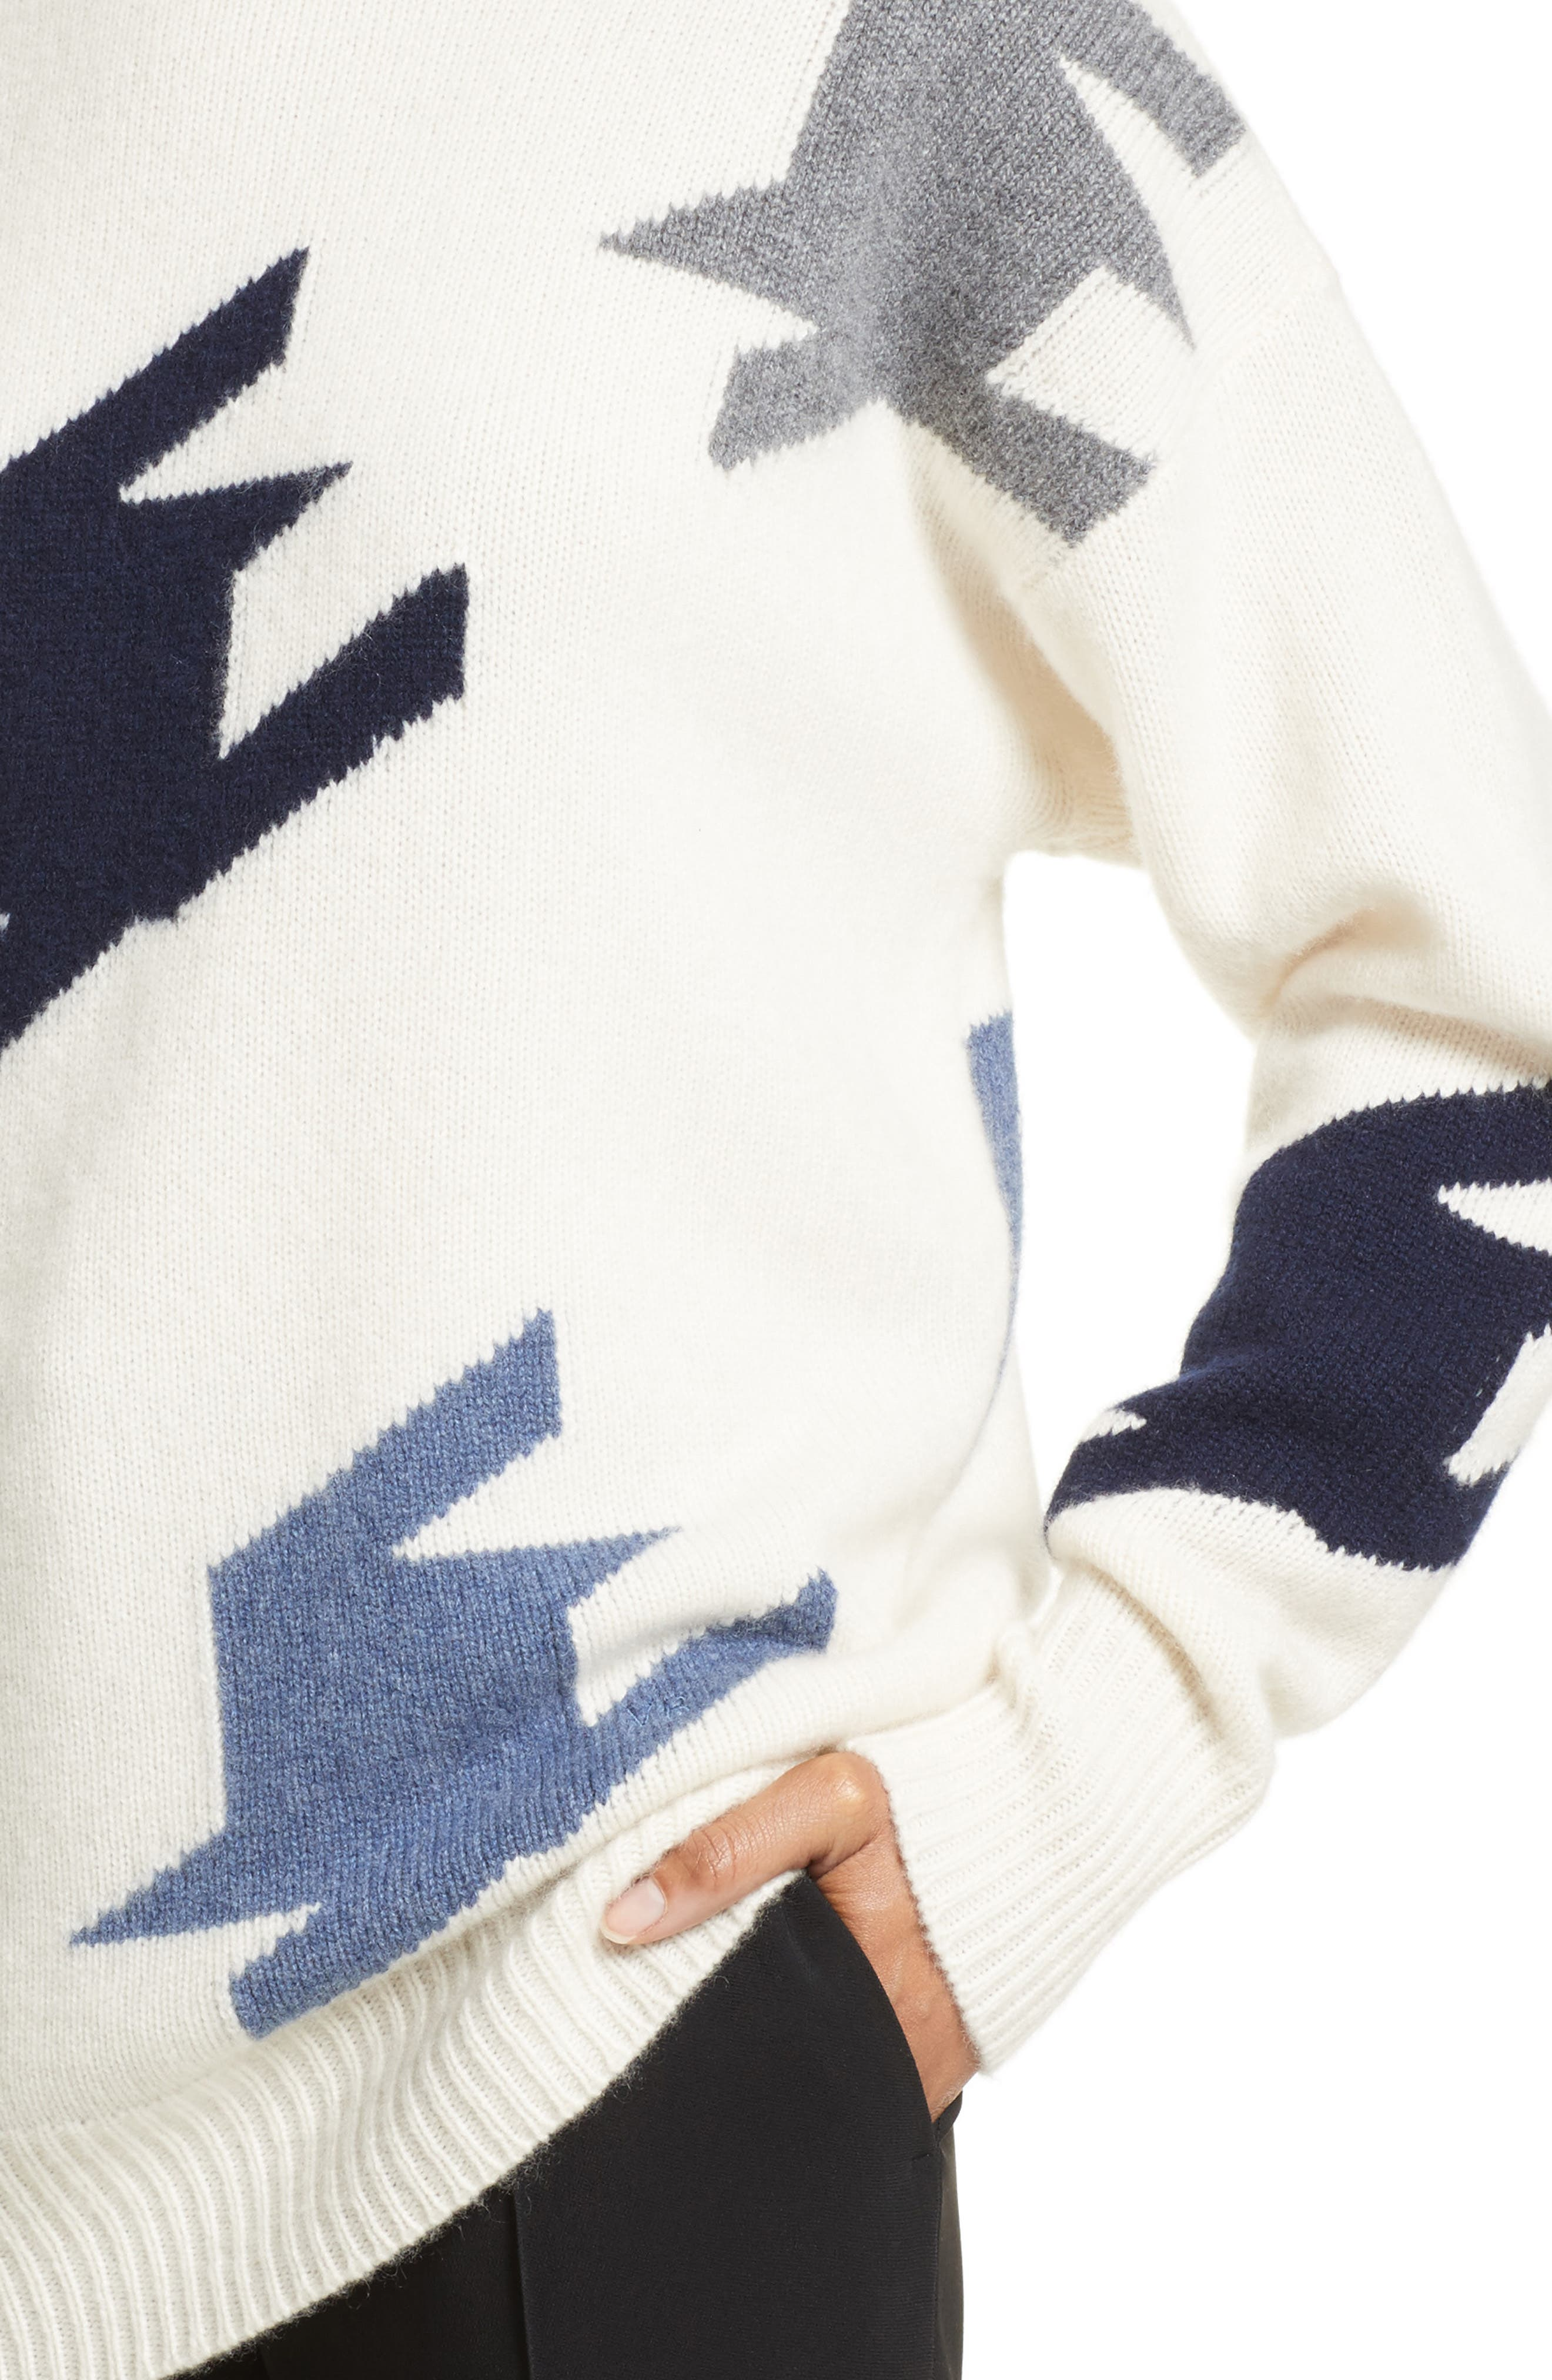 VICTORIA BECKHAM,                             Houndstooth Cashmere Sweater,                             Alternate thumbnail 4, color,                             905